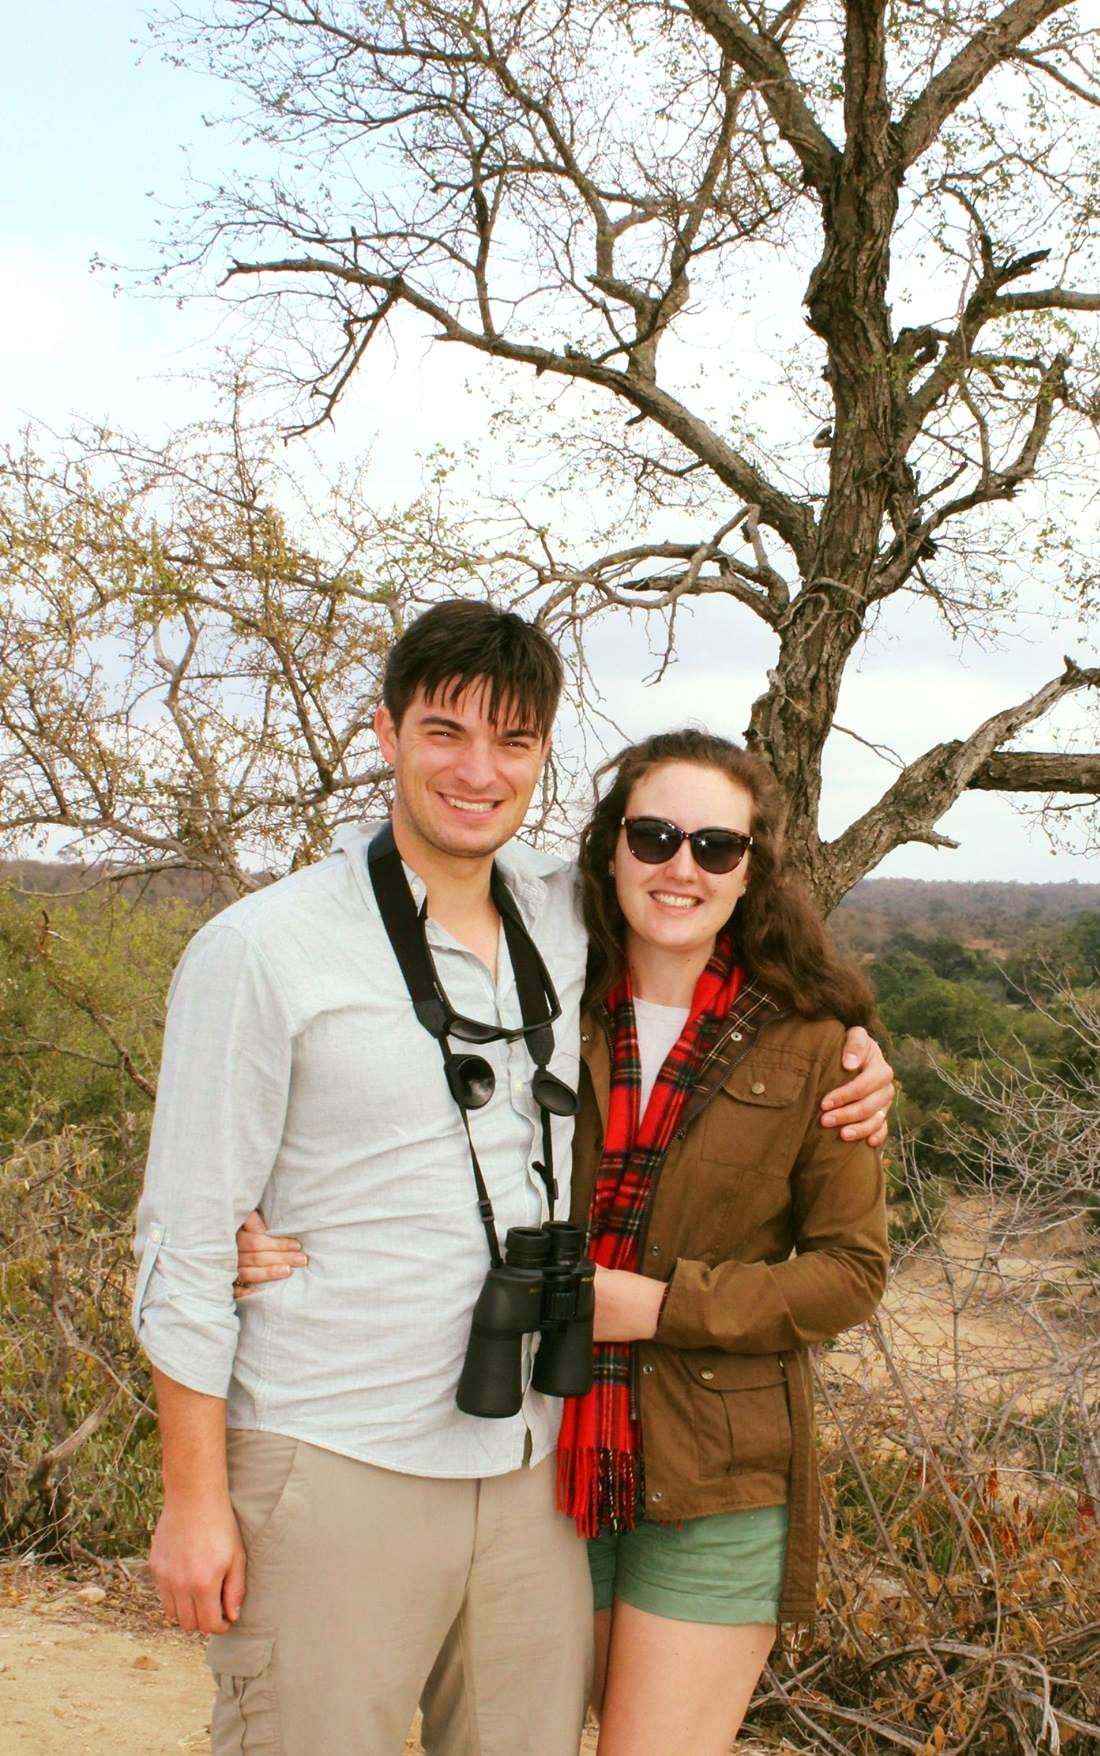 A recent visit to Kruger National Park - right before a lion sighting!